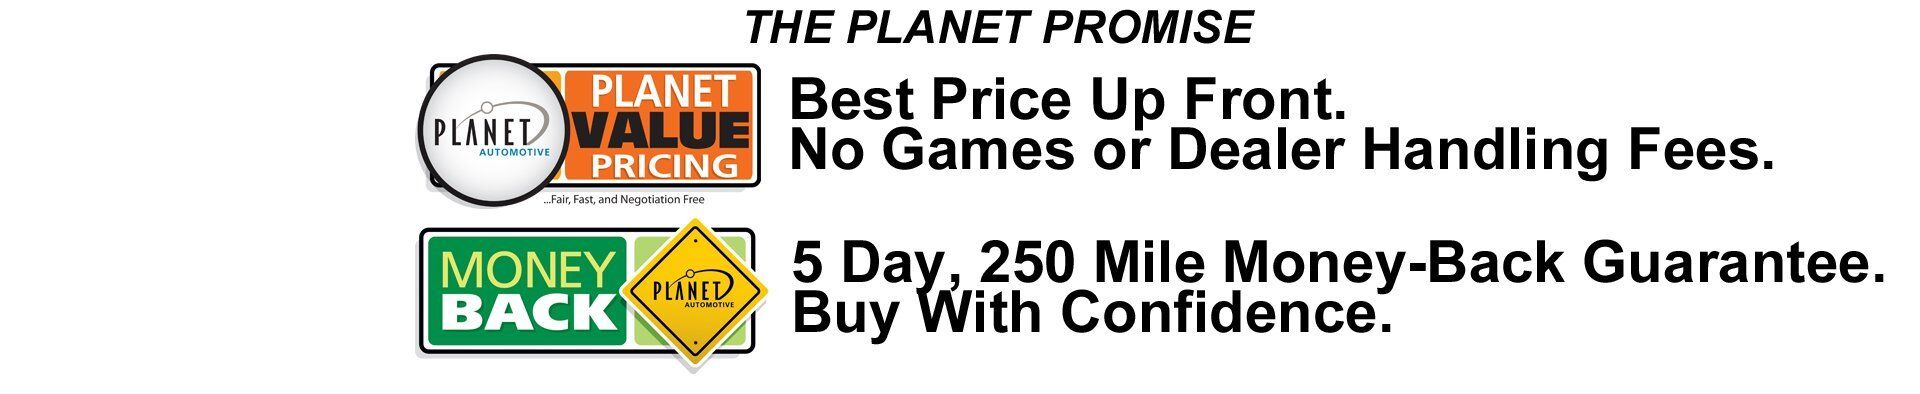 The Planet Promise